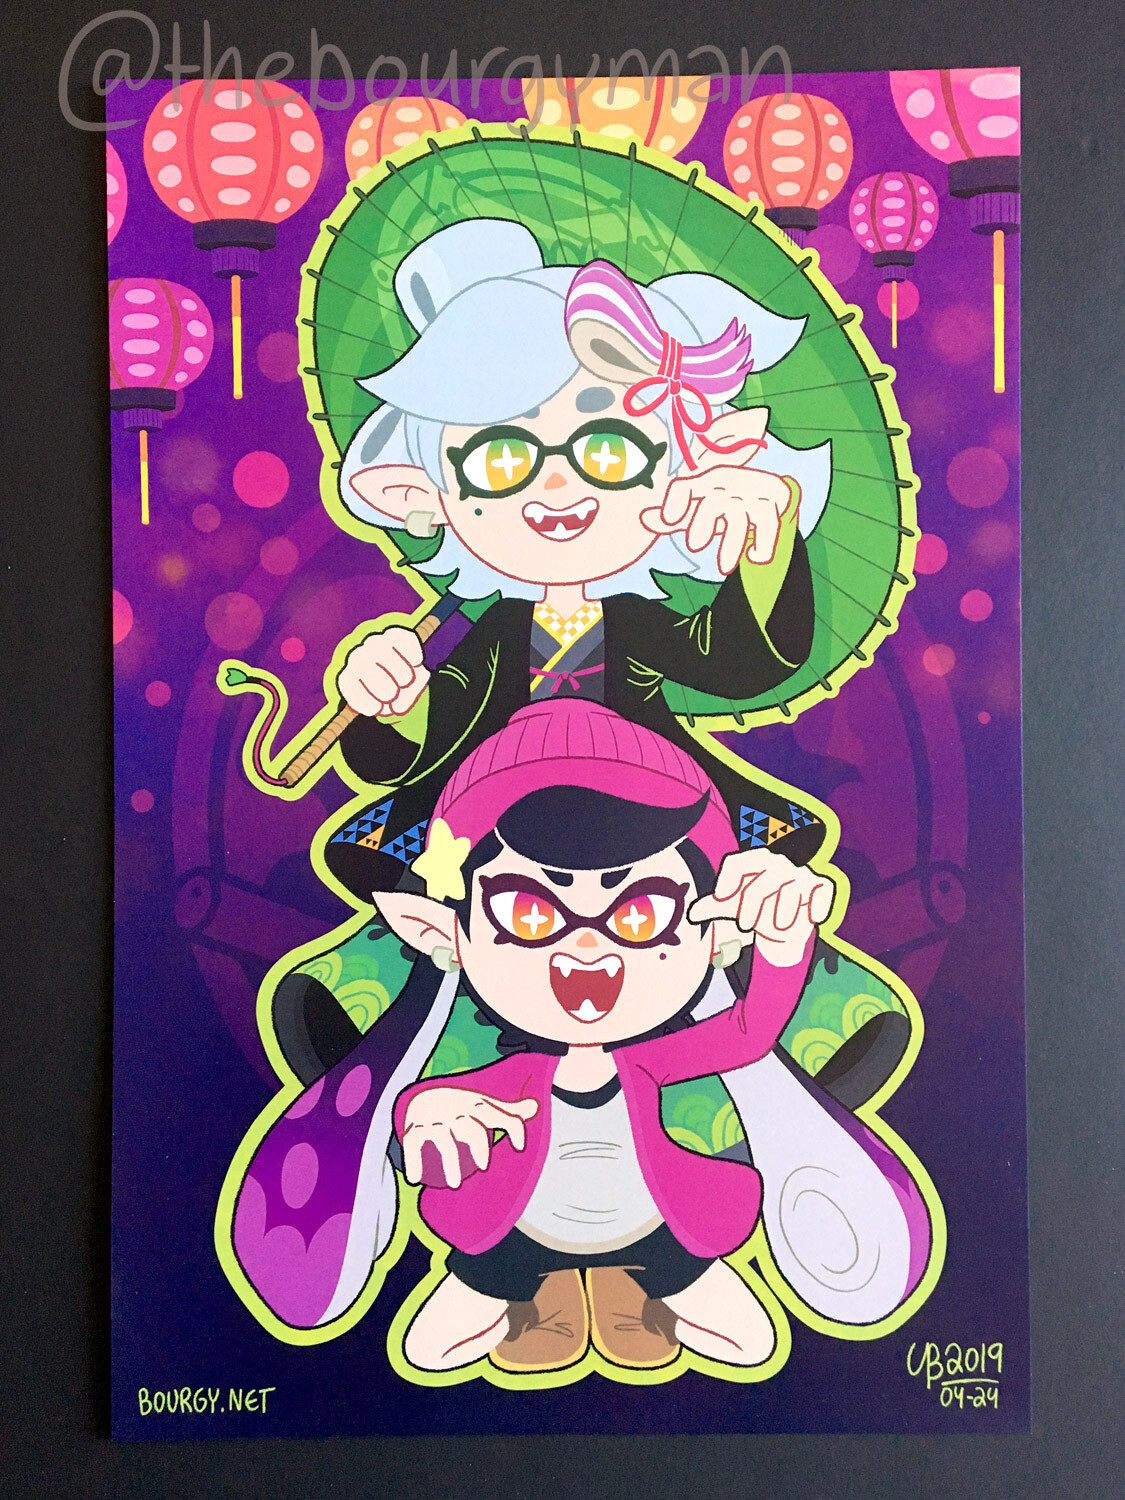 The Squid Sisters (Splatoon 2) poster/affiche